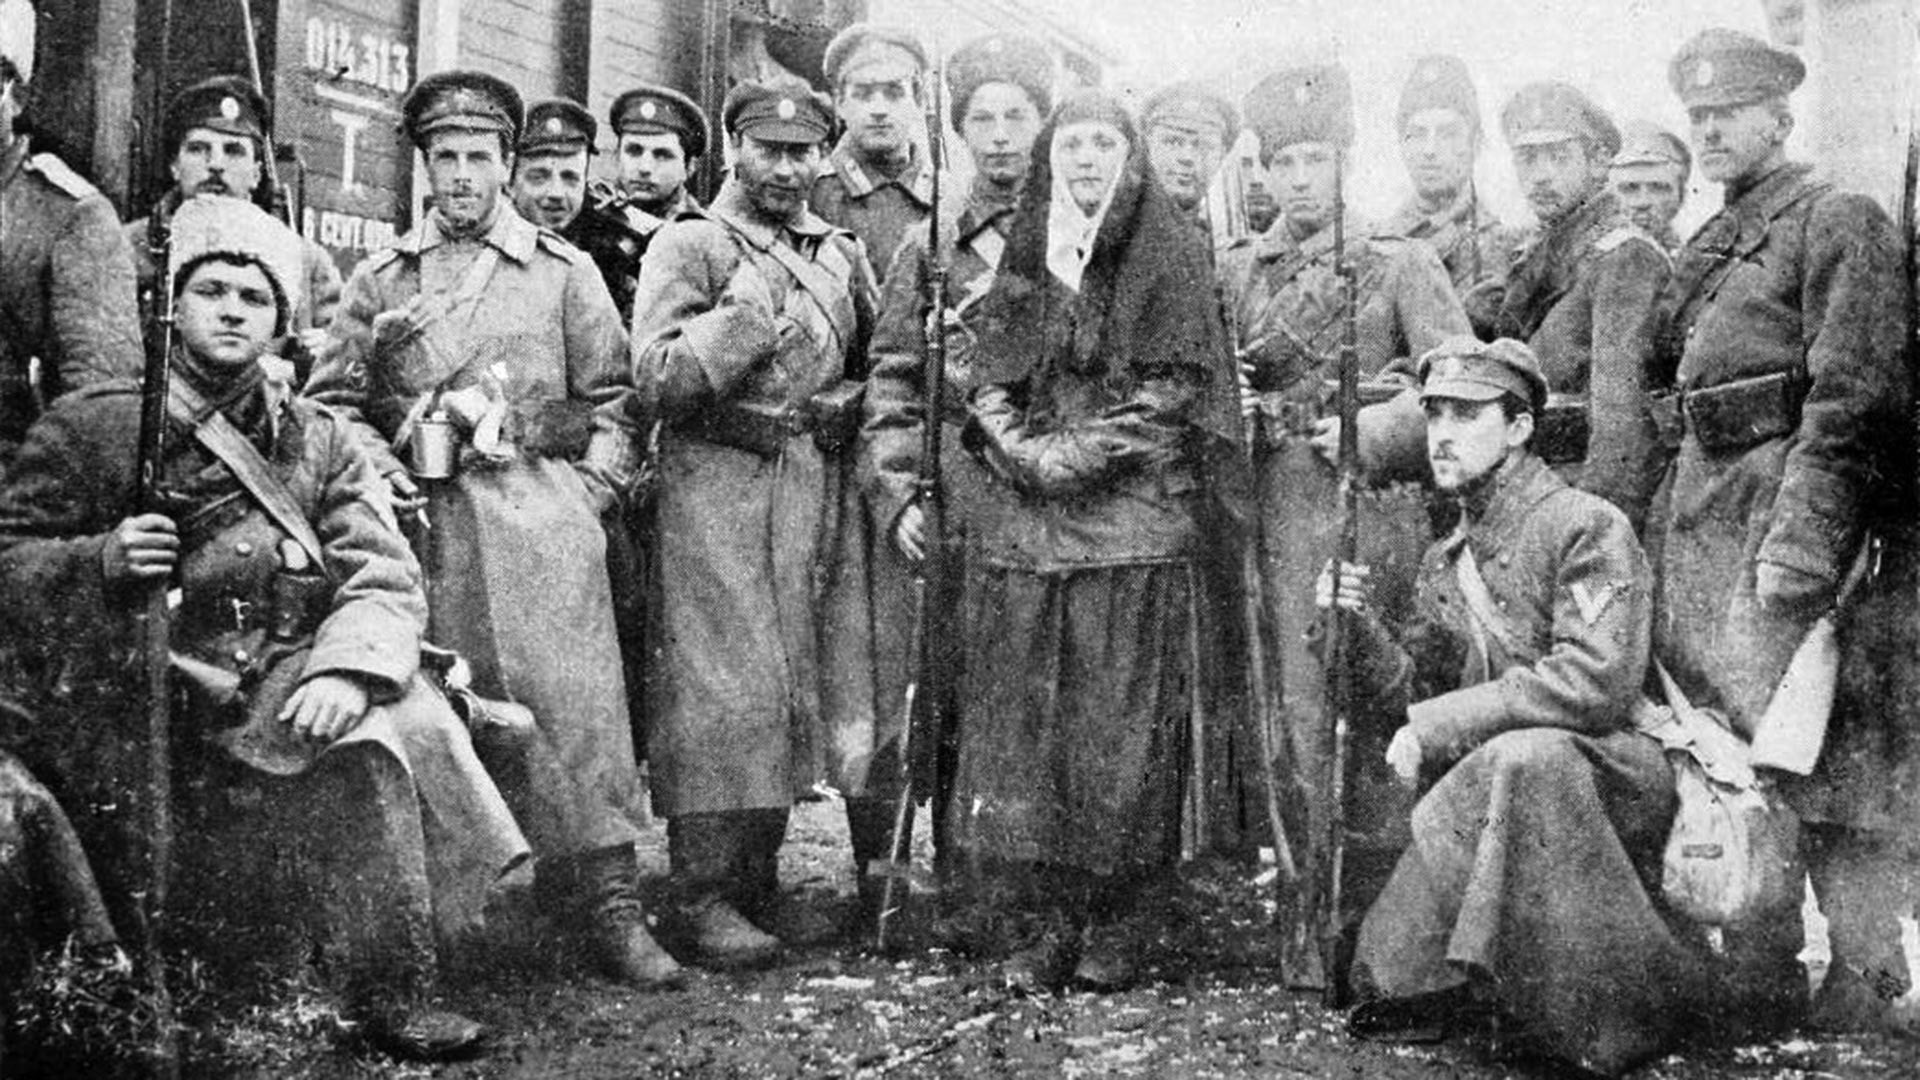 The White Army soldiers.